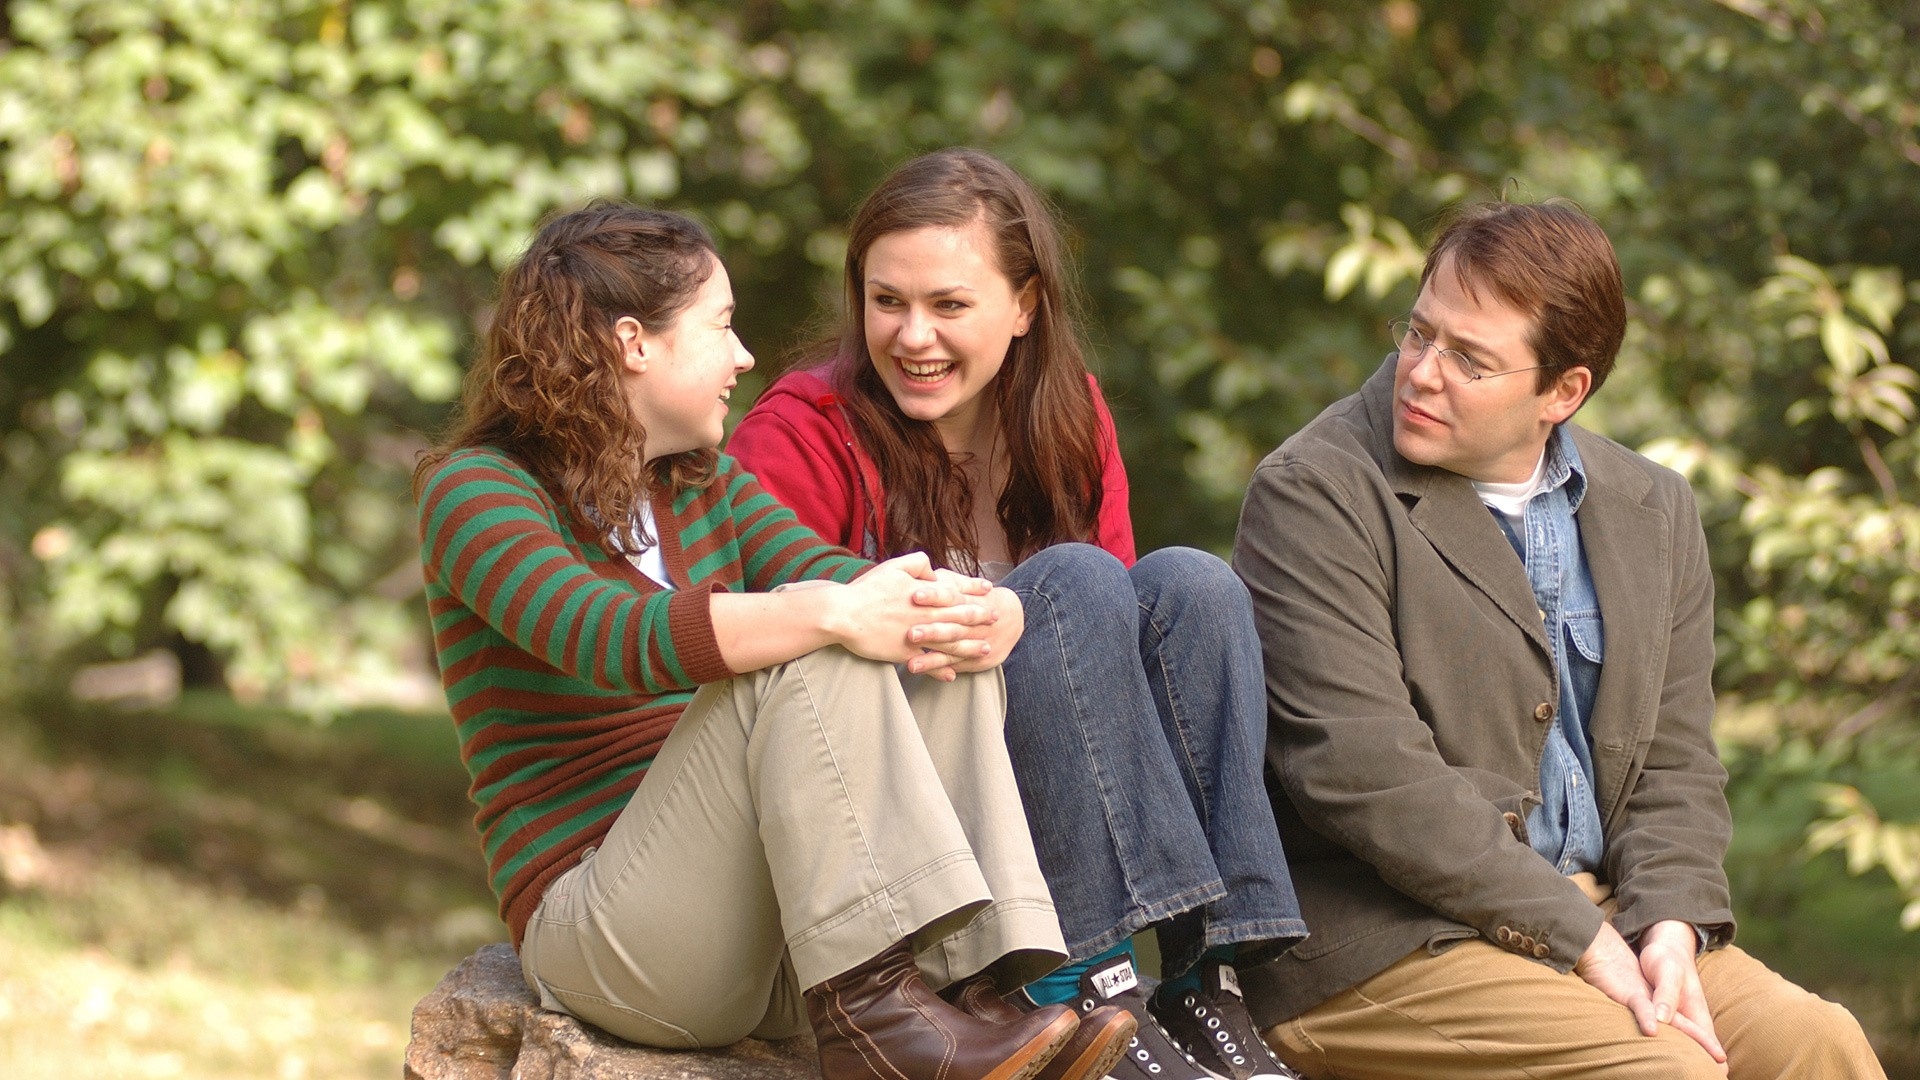 Sarah Steele, Anna Paquin and Matthew Broderick in Margaret (2011). Lisa sits on a large rock in the park with her friends Becky and her teacher John. Lisa and Becky are laughing together whilst John looks on solemnly.